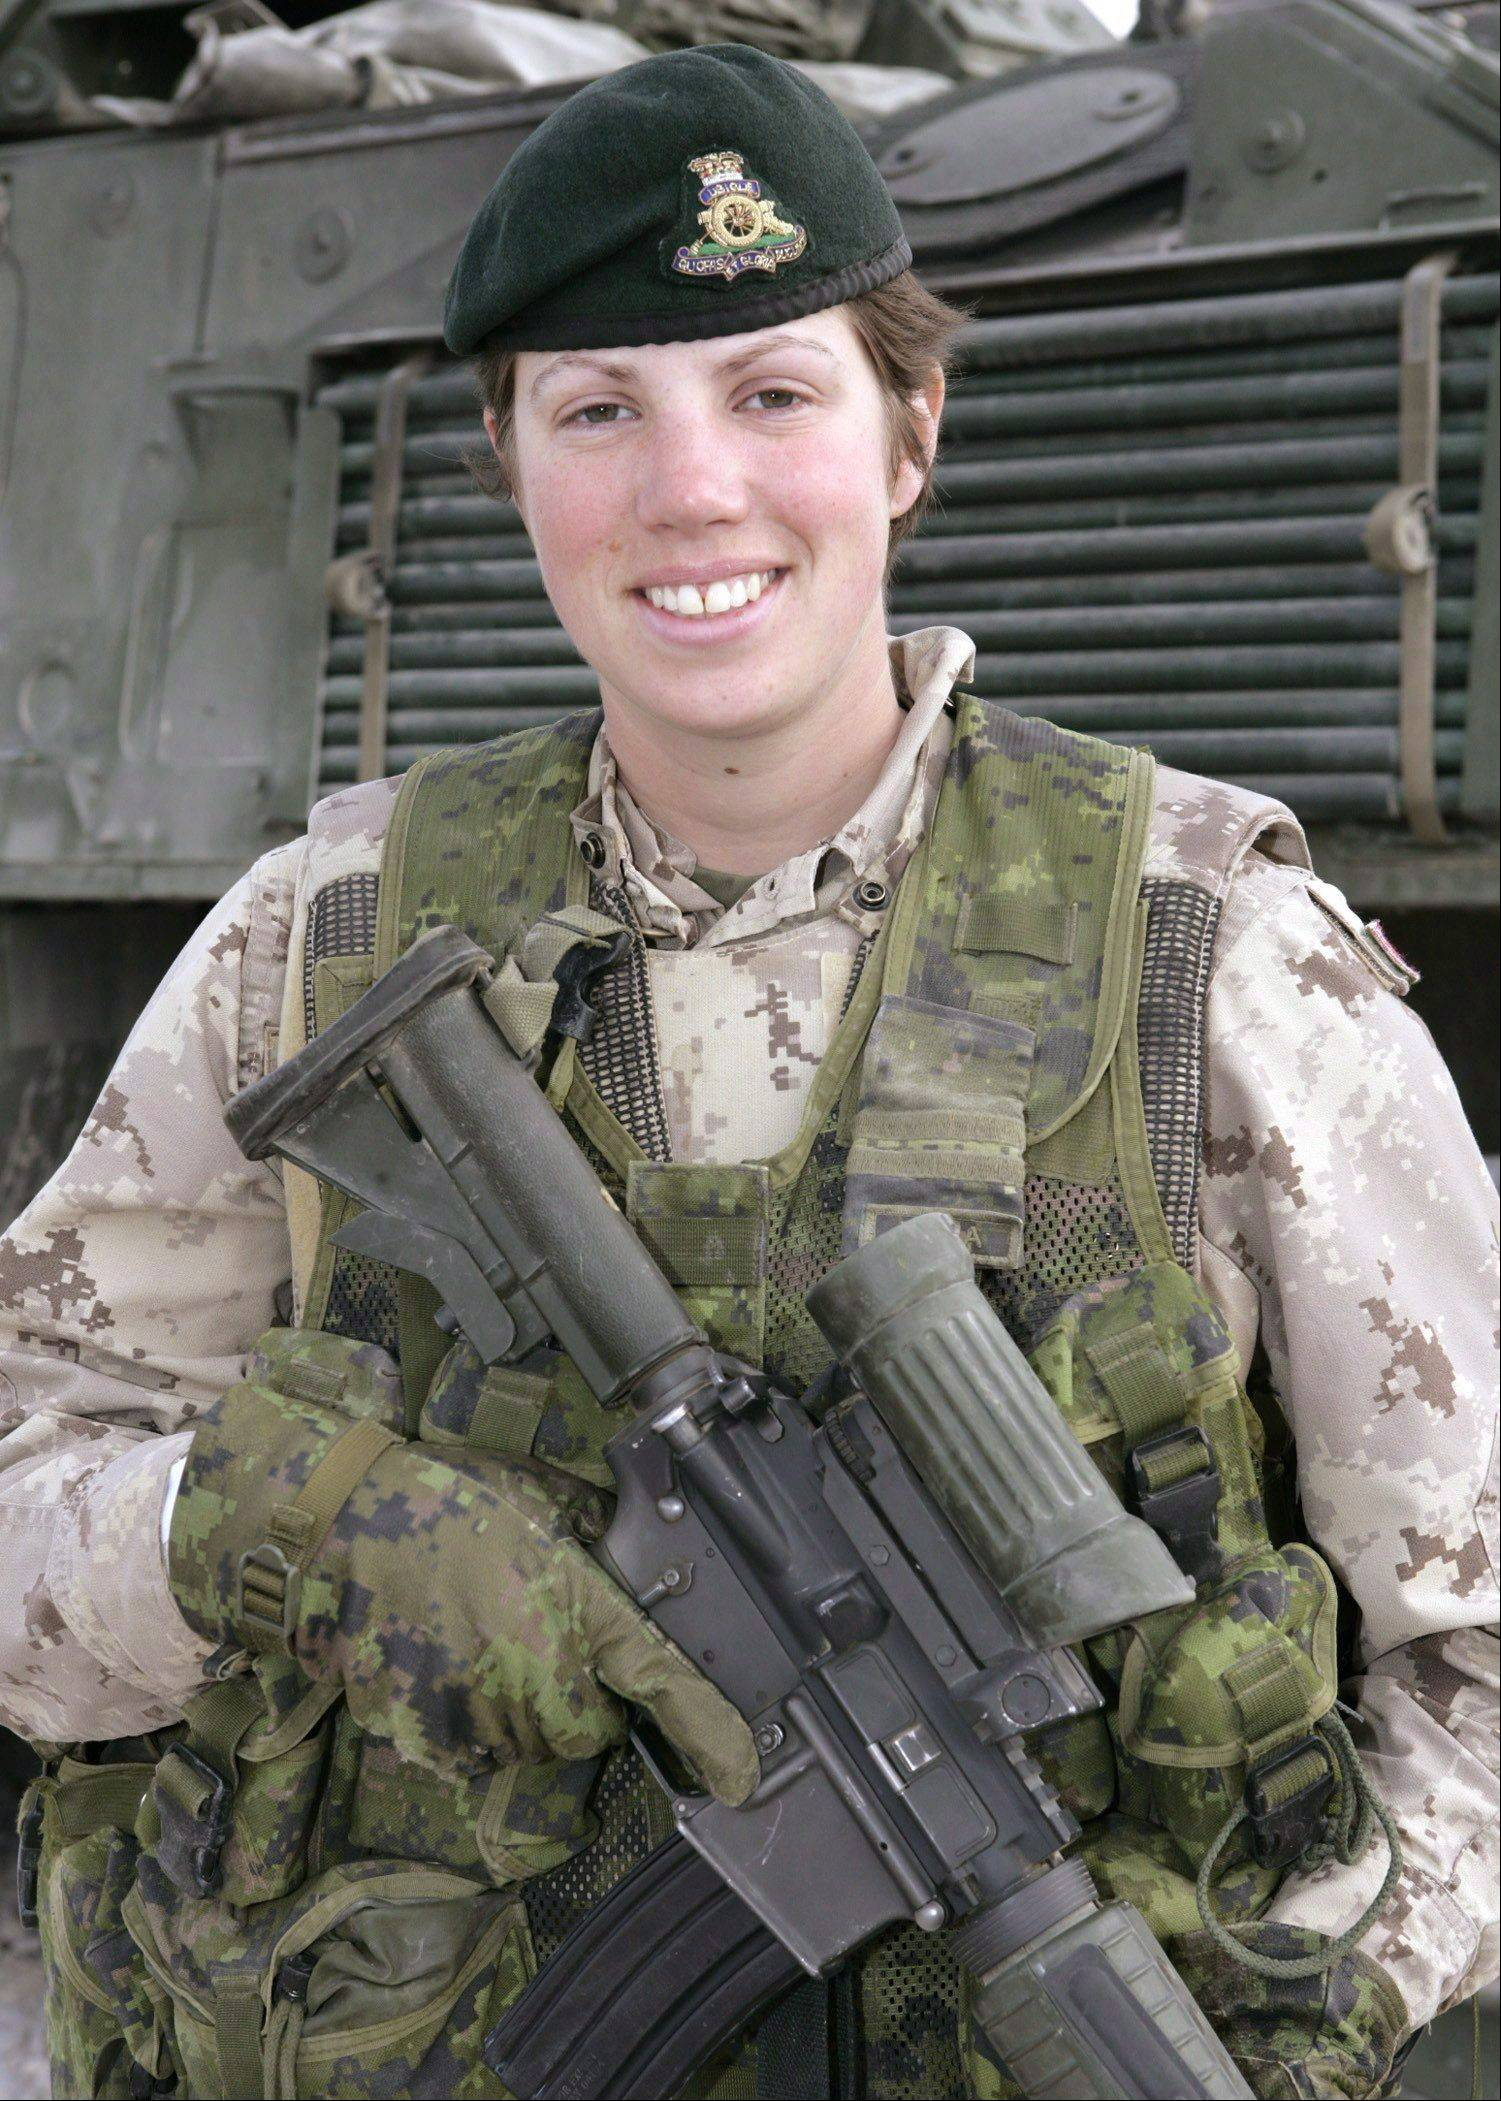 This undated photo provided by the Canadian Armed Forces shows Capt. Nichola Goddard, the first Canadian woman to be killed in battle since her country's 1989 decision to admit women soldiers into combat.